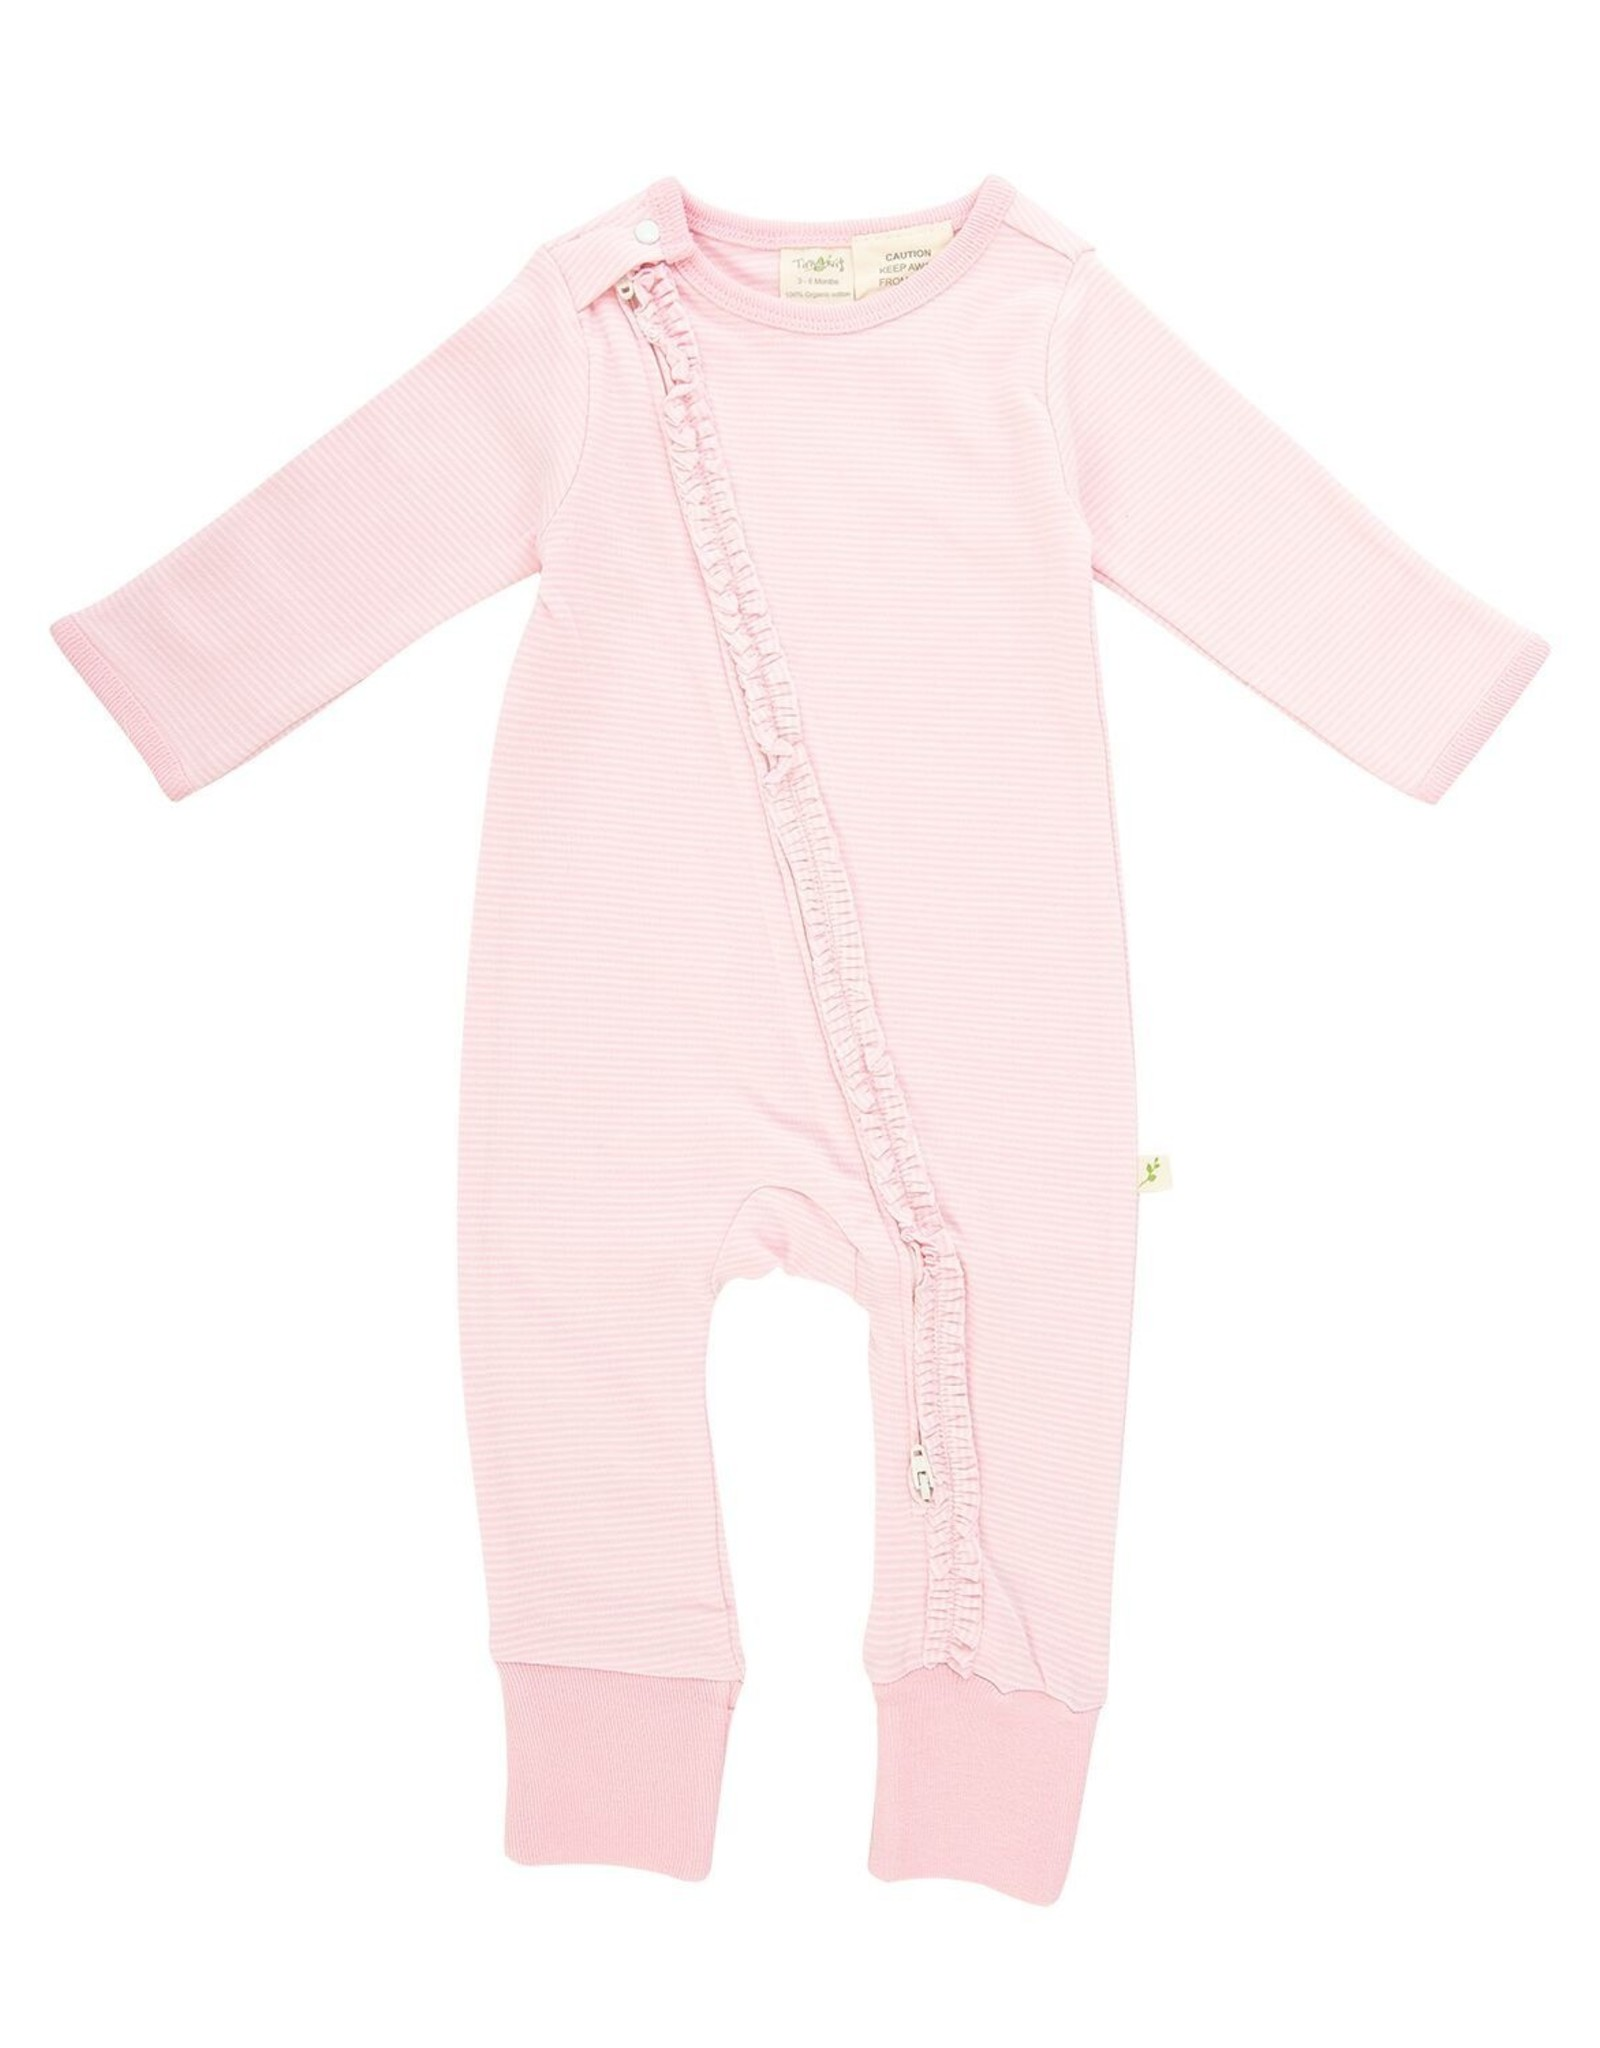 Tiny Twig Frill Zipsuit- Pink Stripes 9-12m